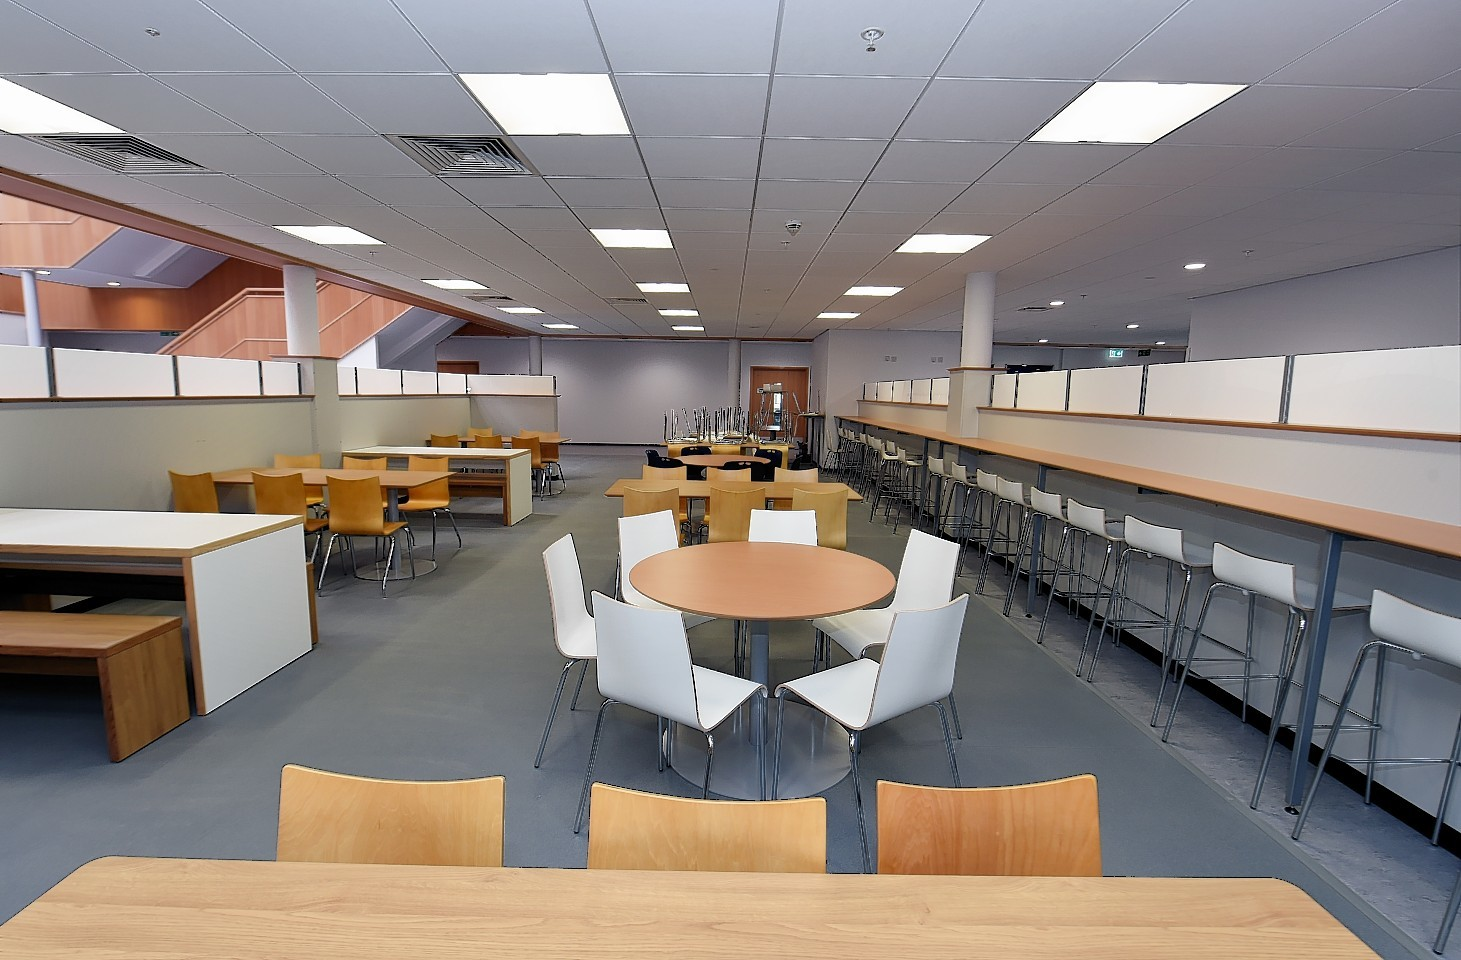 The canteen of the new Ellon Academy. Credit: Kevin Emslie.